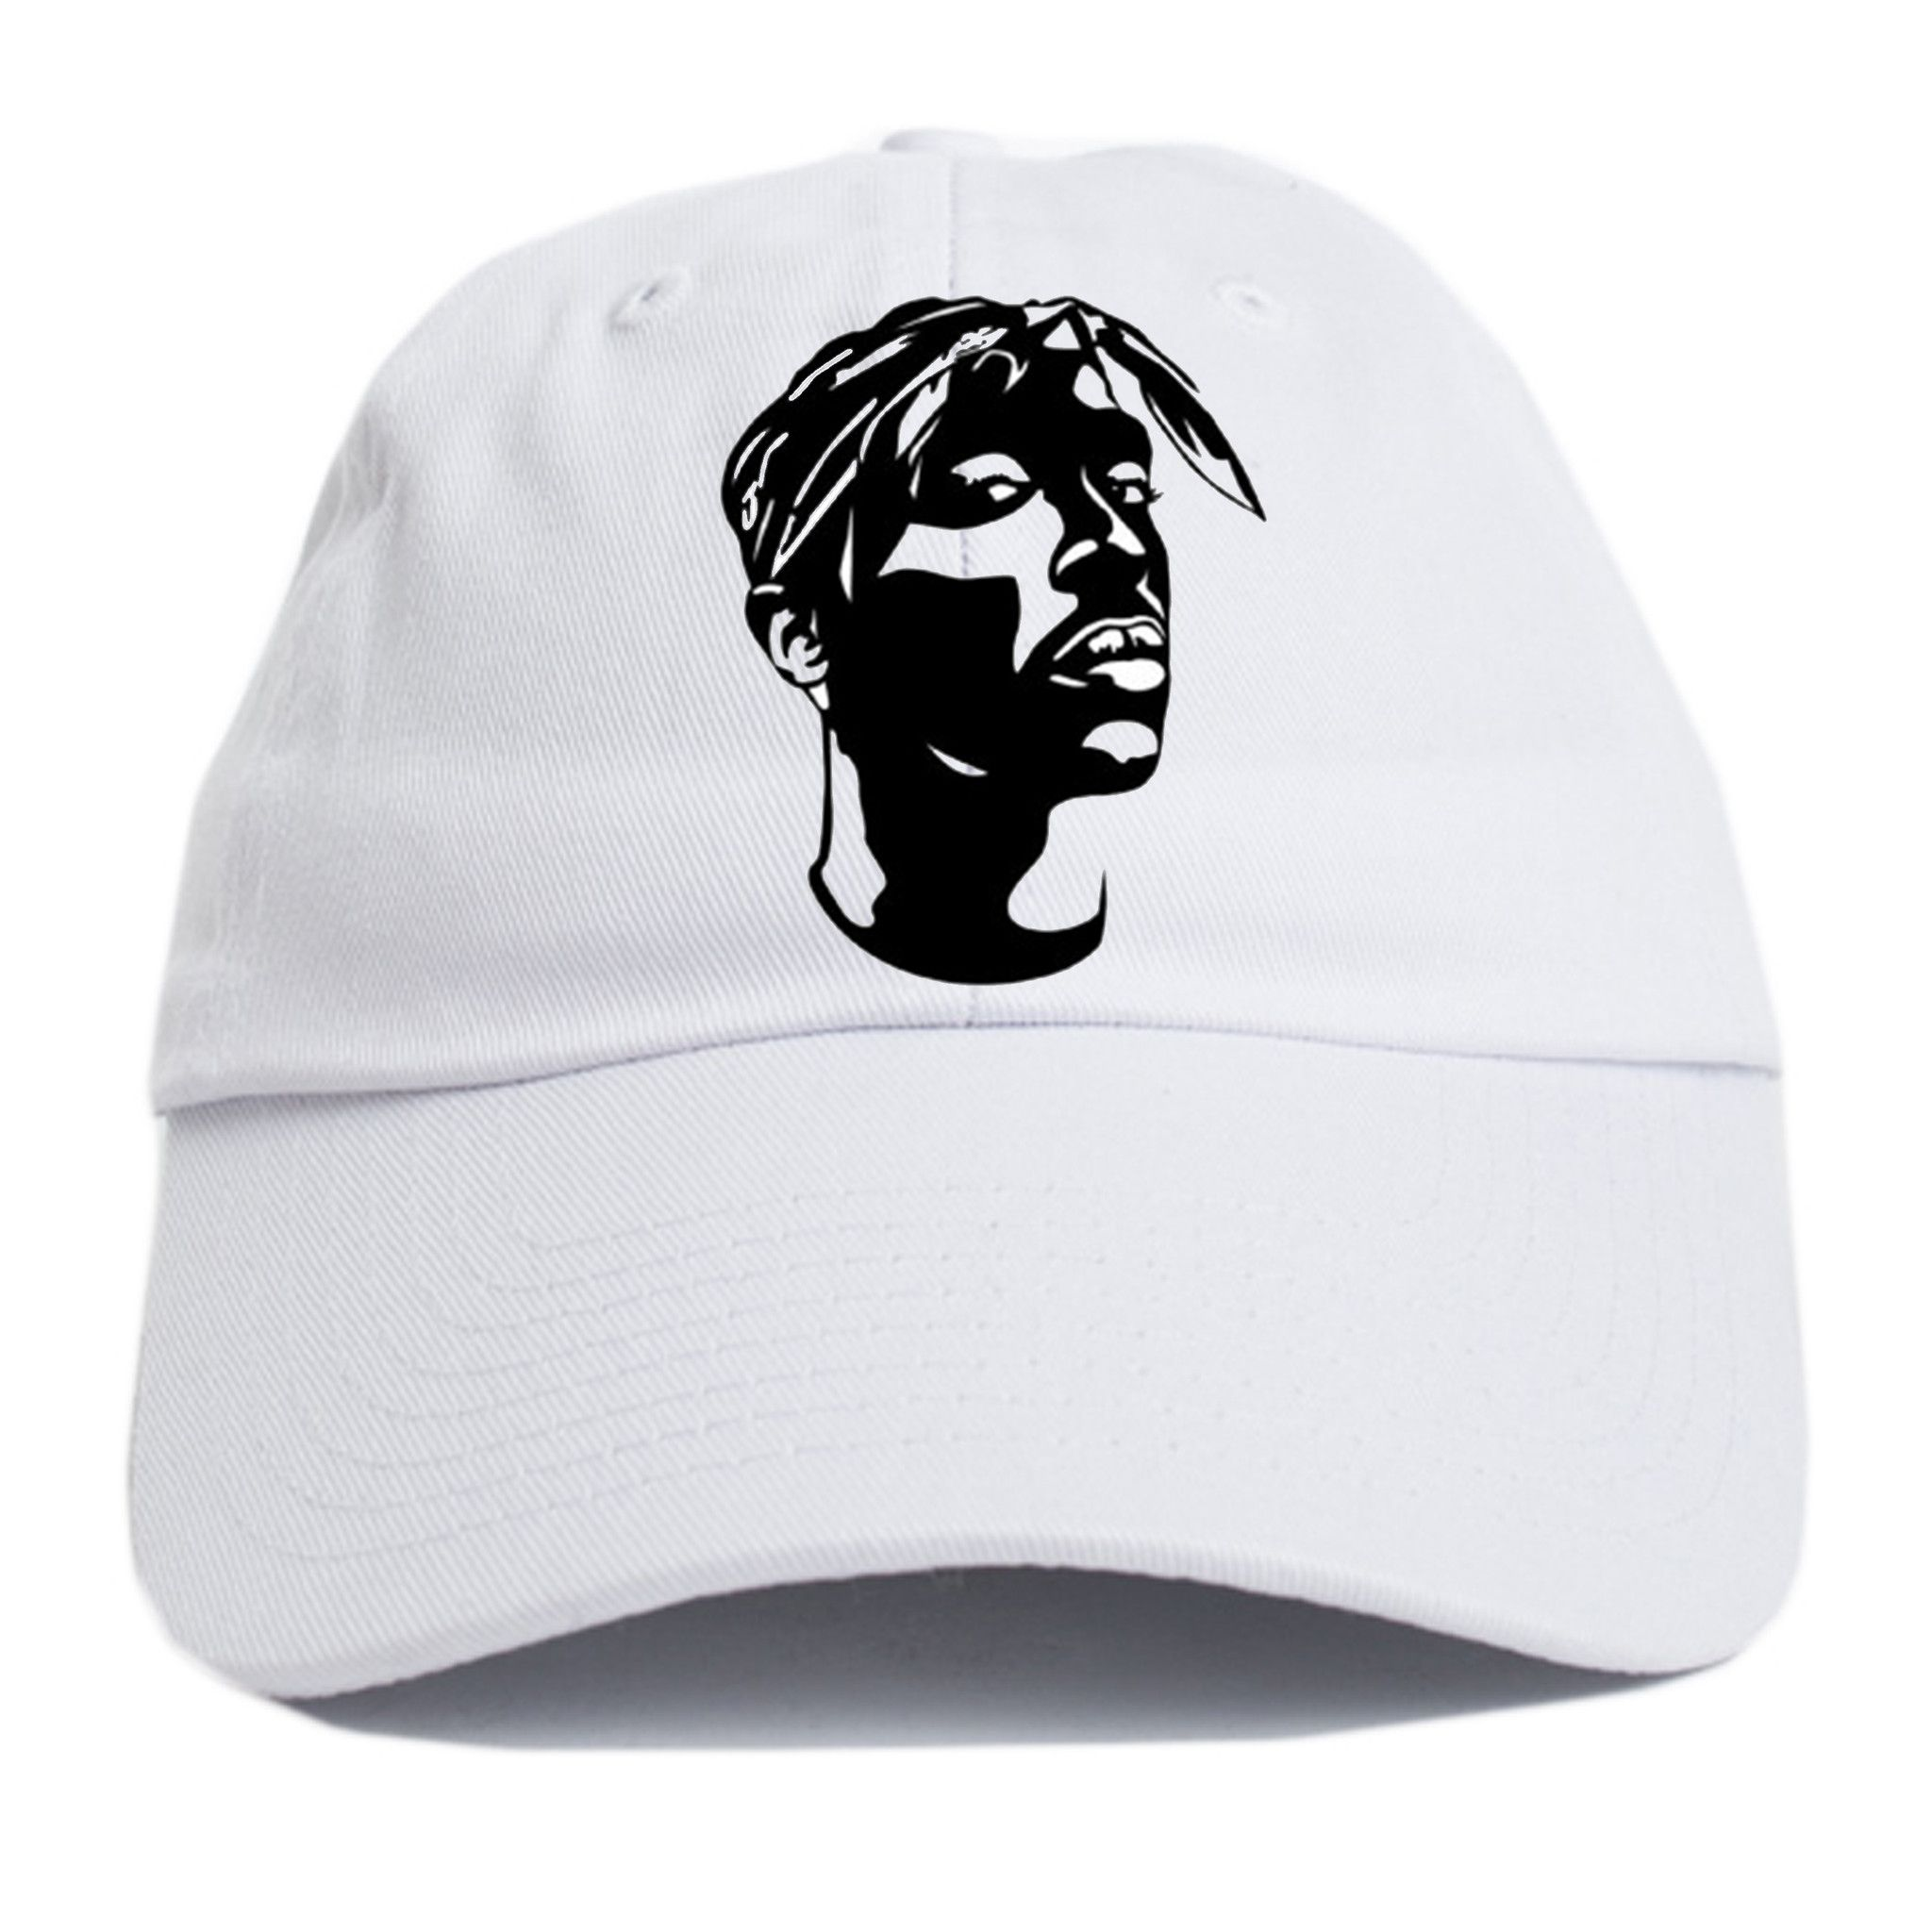 9534abb8 2 Pac Dad Hat in 2019 | Caps | Hats, Strapback hats, Dad hats